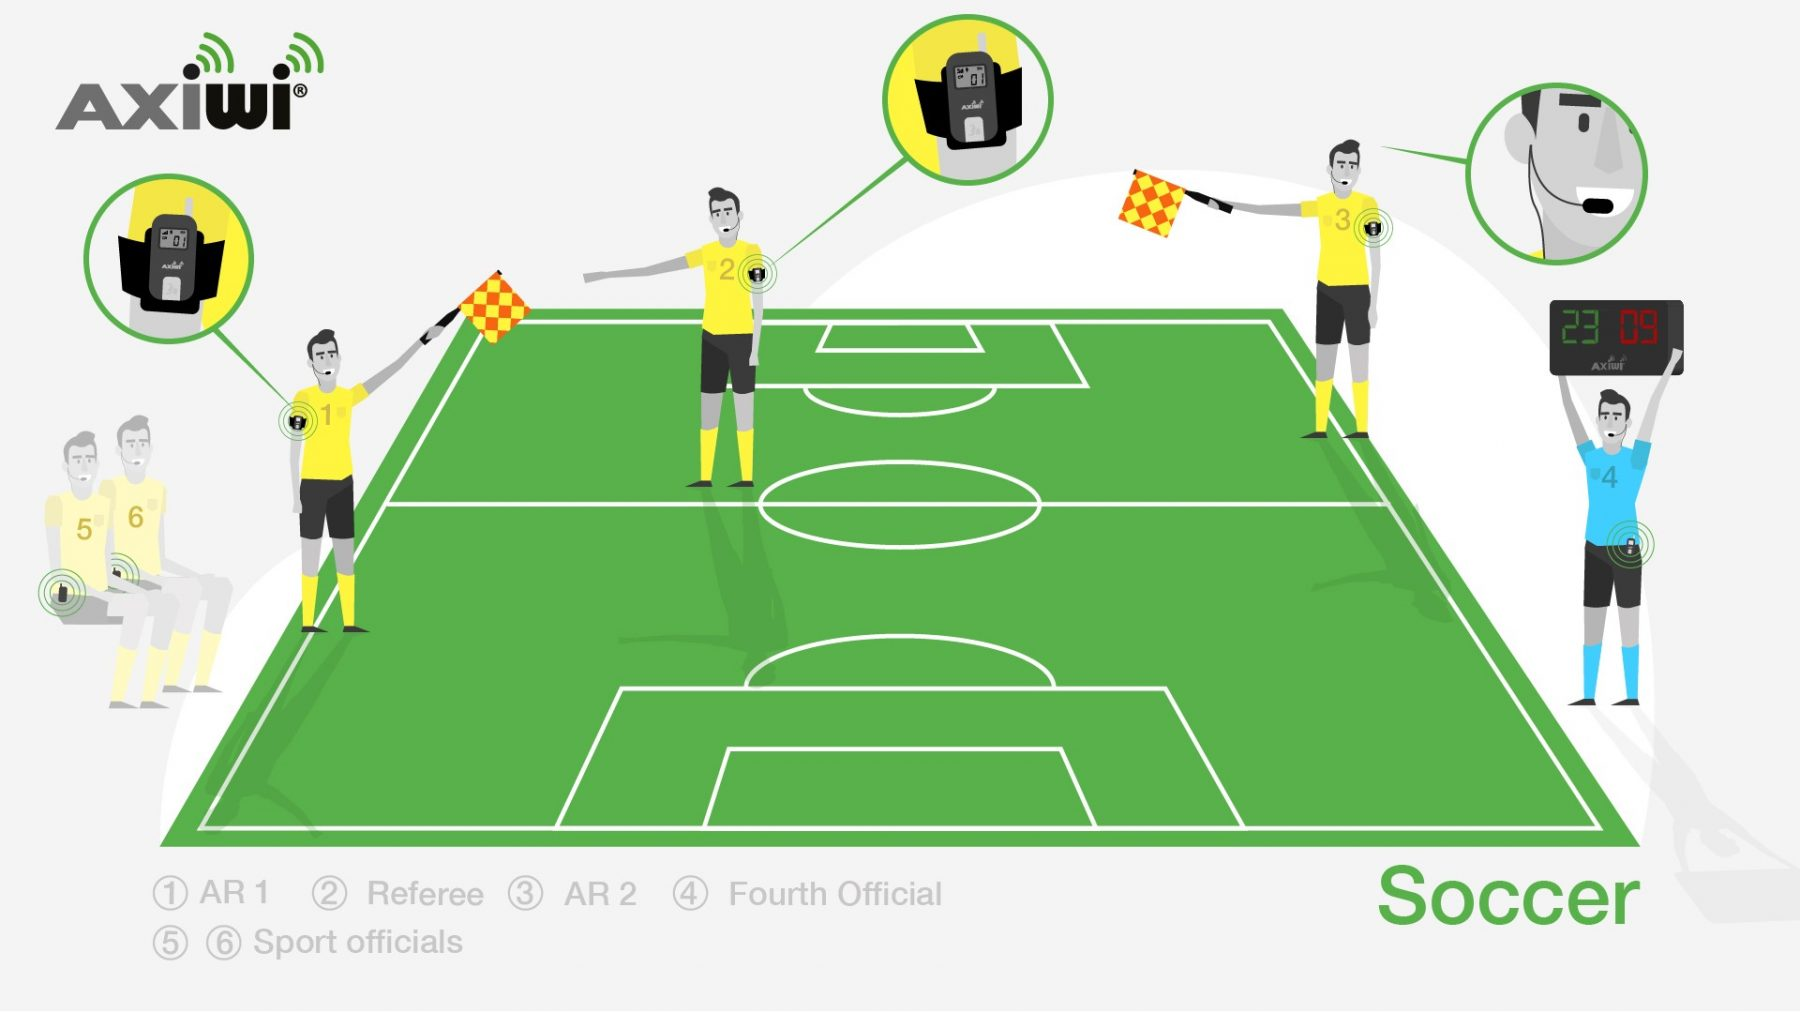 axiwi-communication-system-referee-soccer